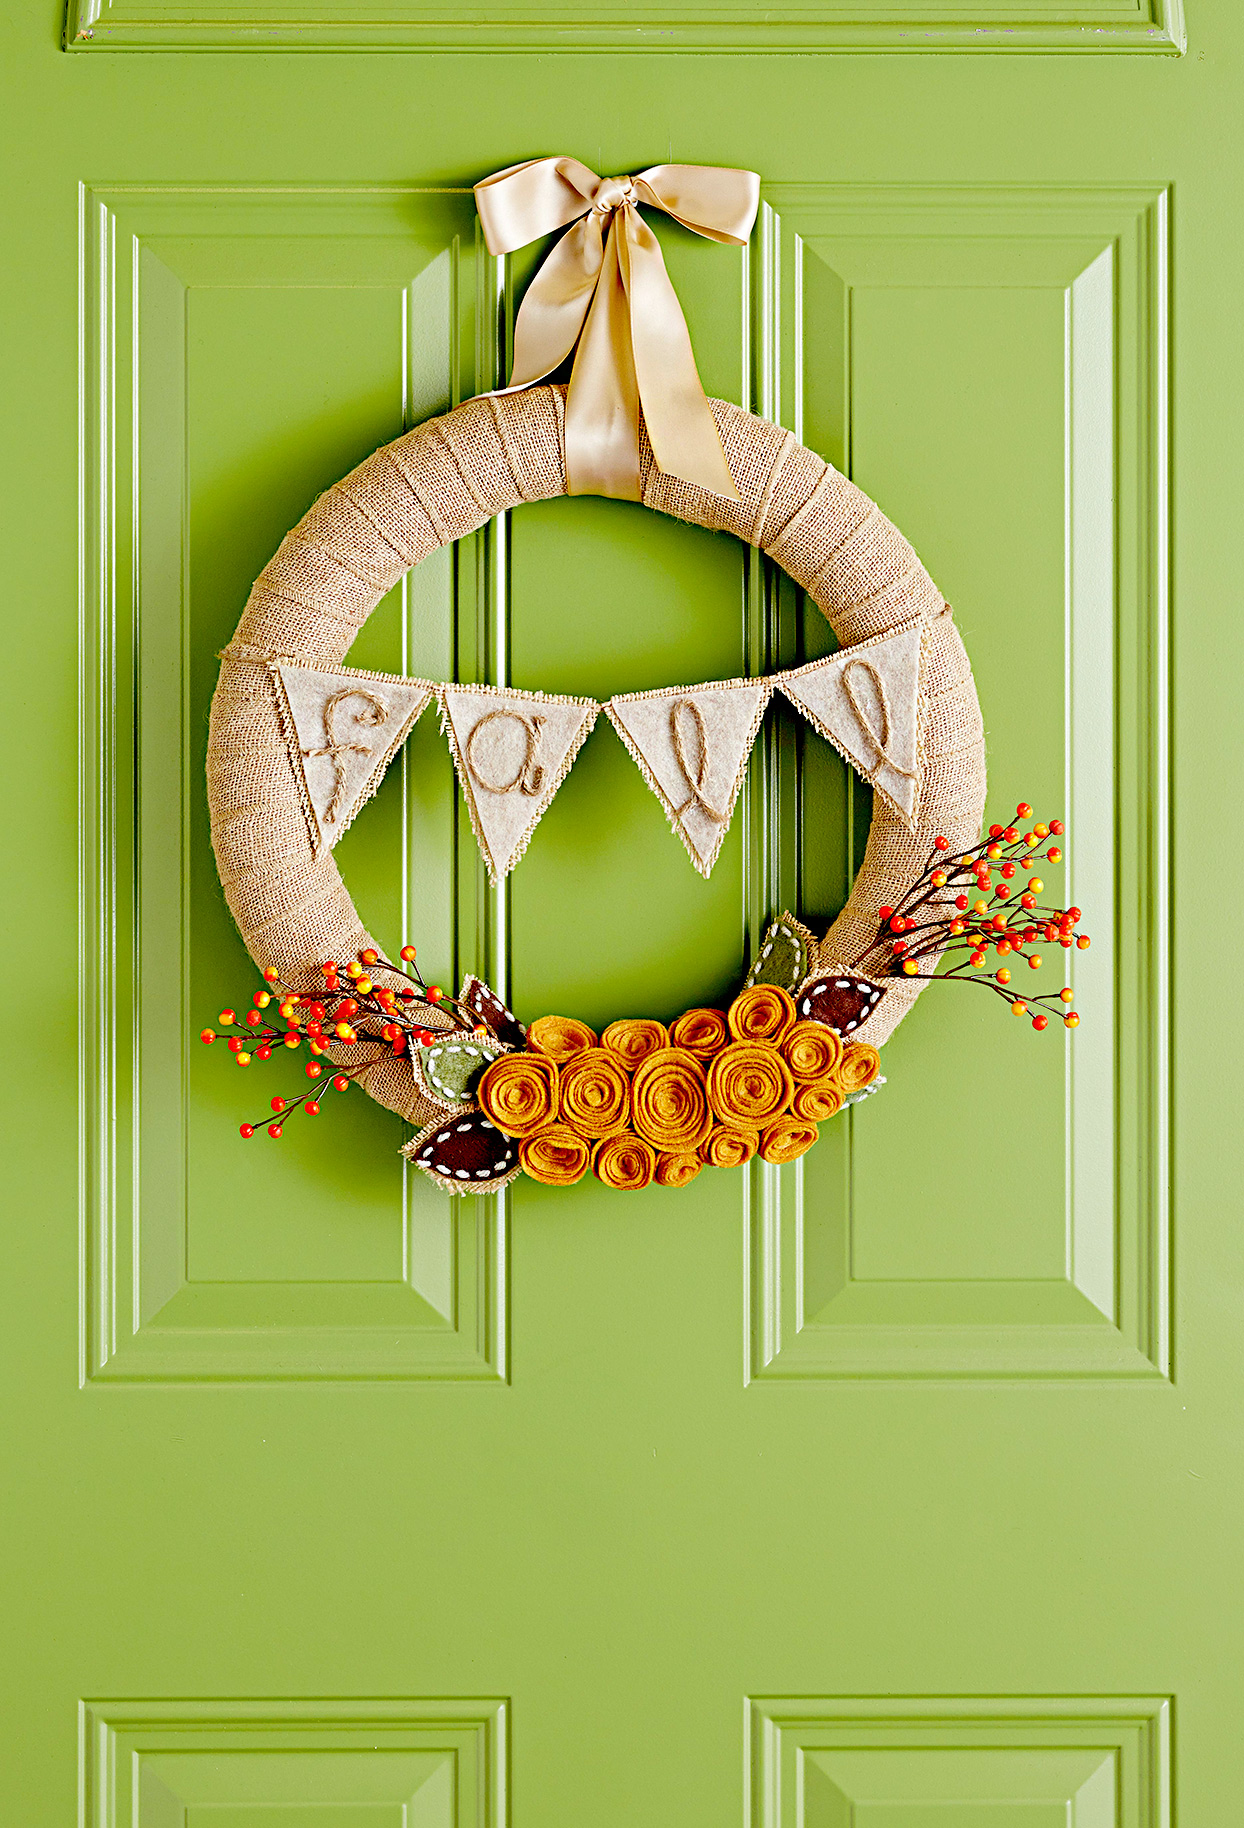 Fall wreath with flowers and bow on green door